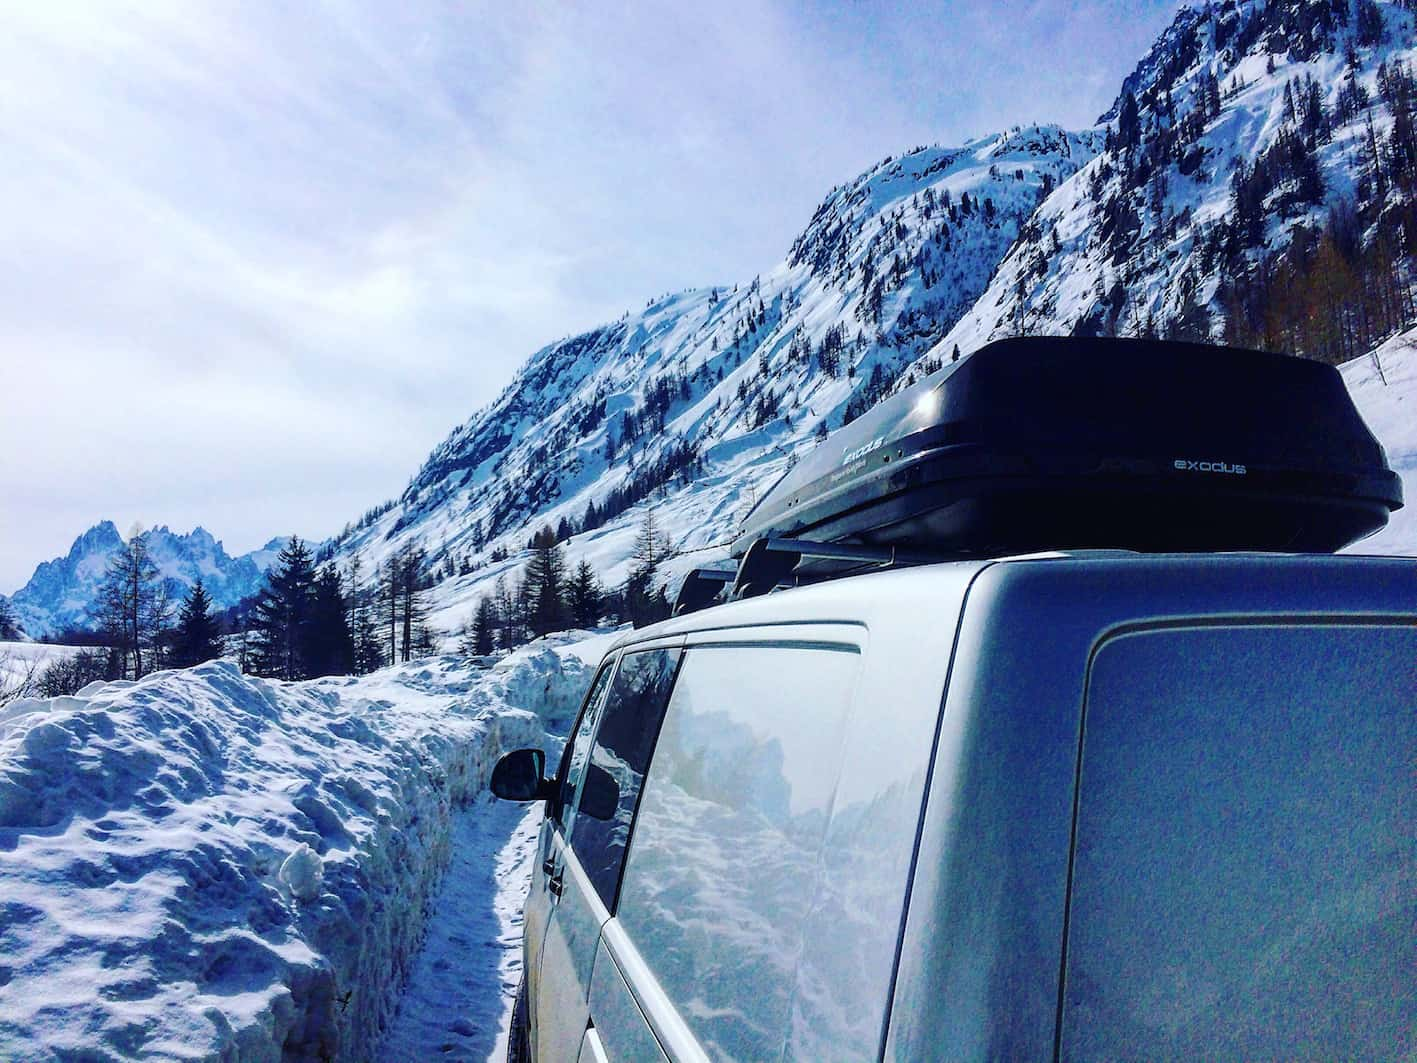 van with roof box in snowy mountain scene